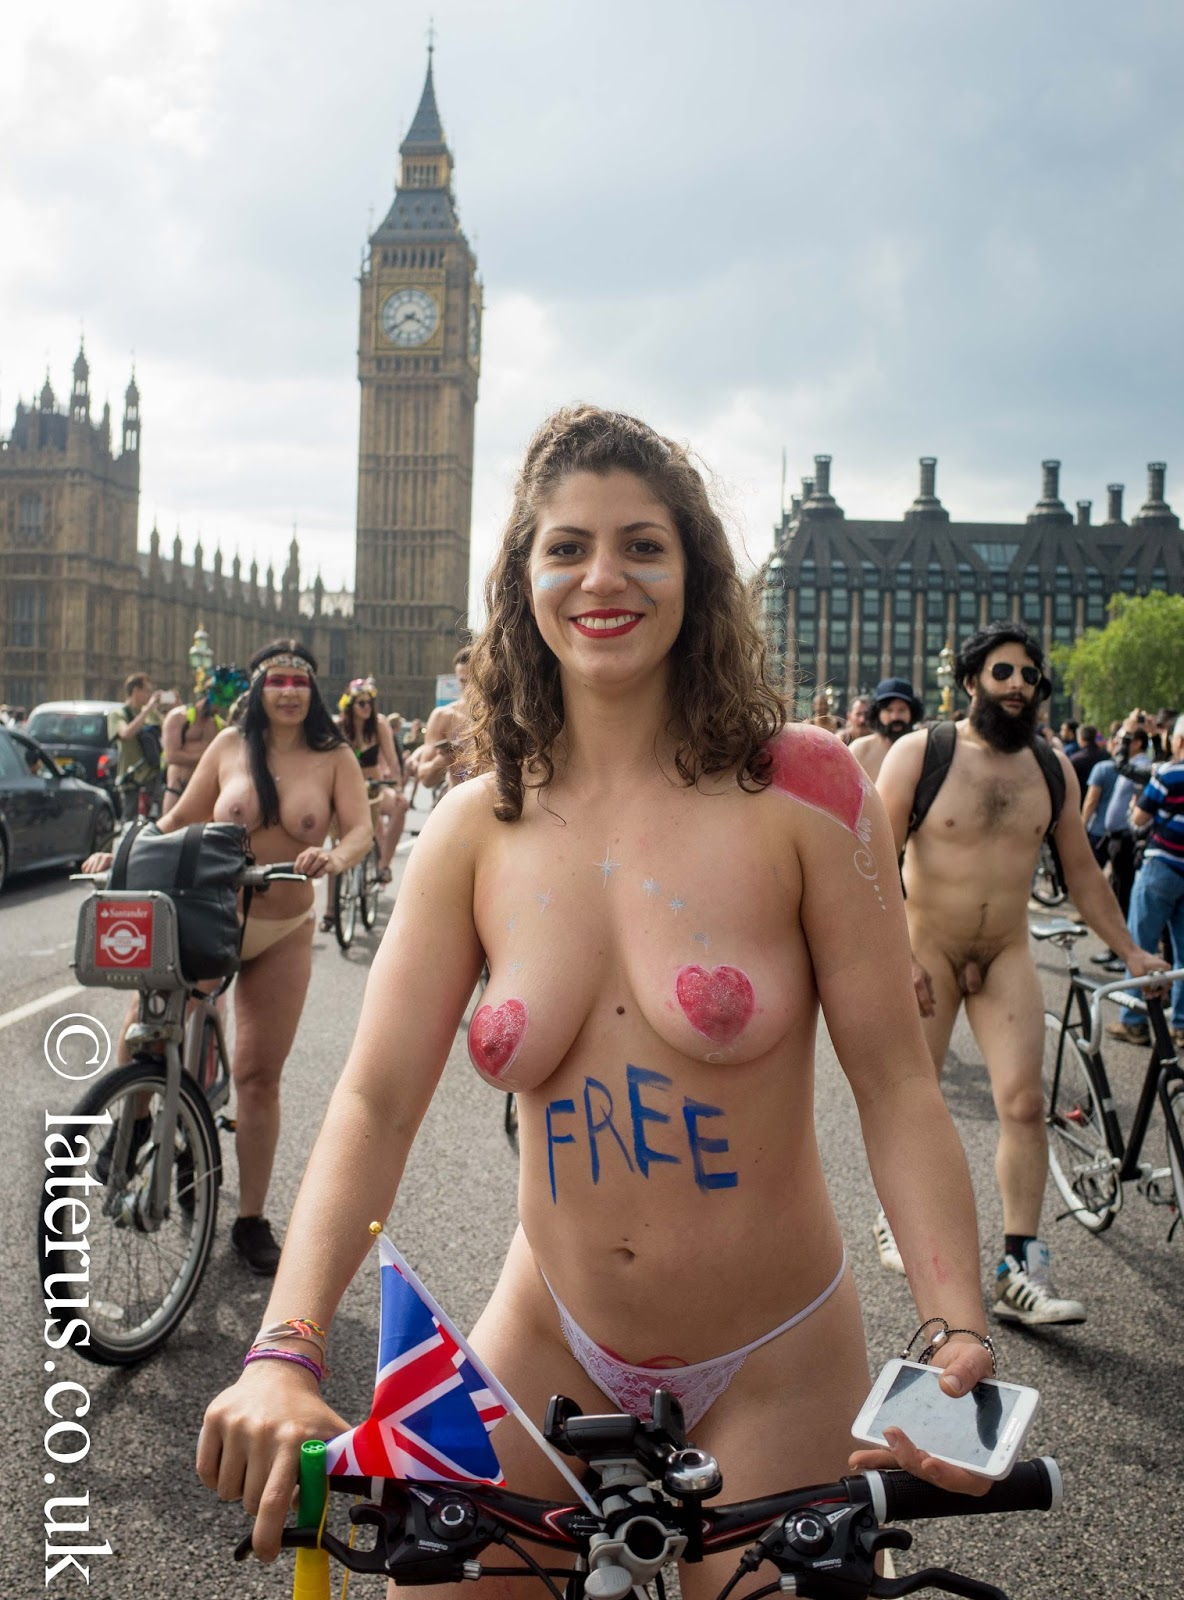 London Naked Bike Ride Pictures